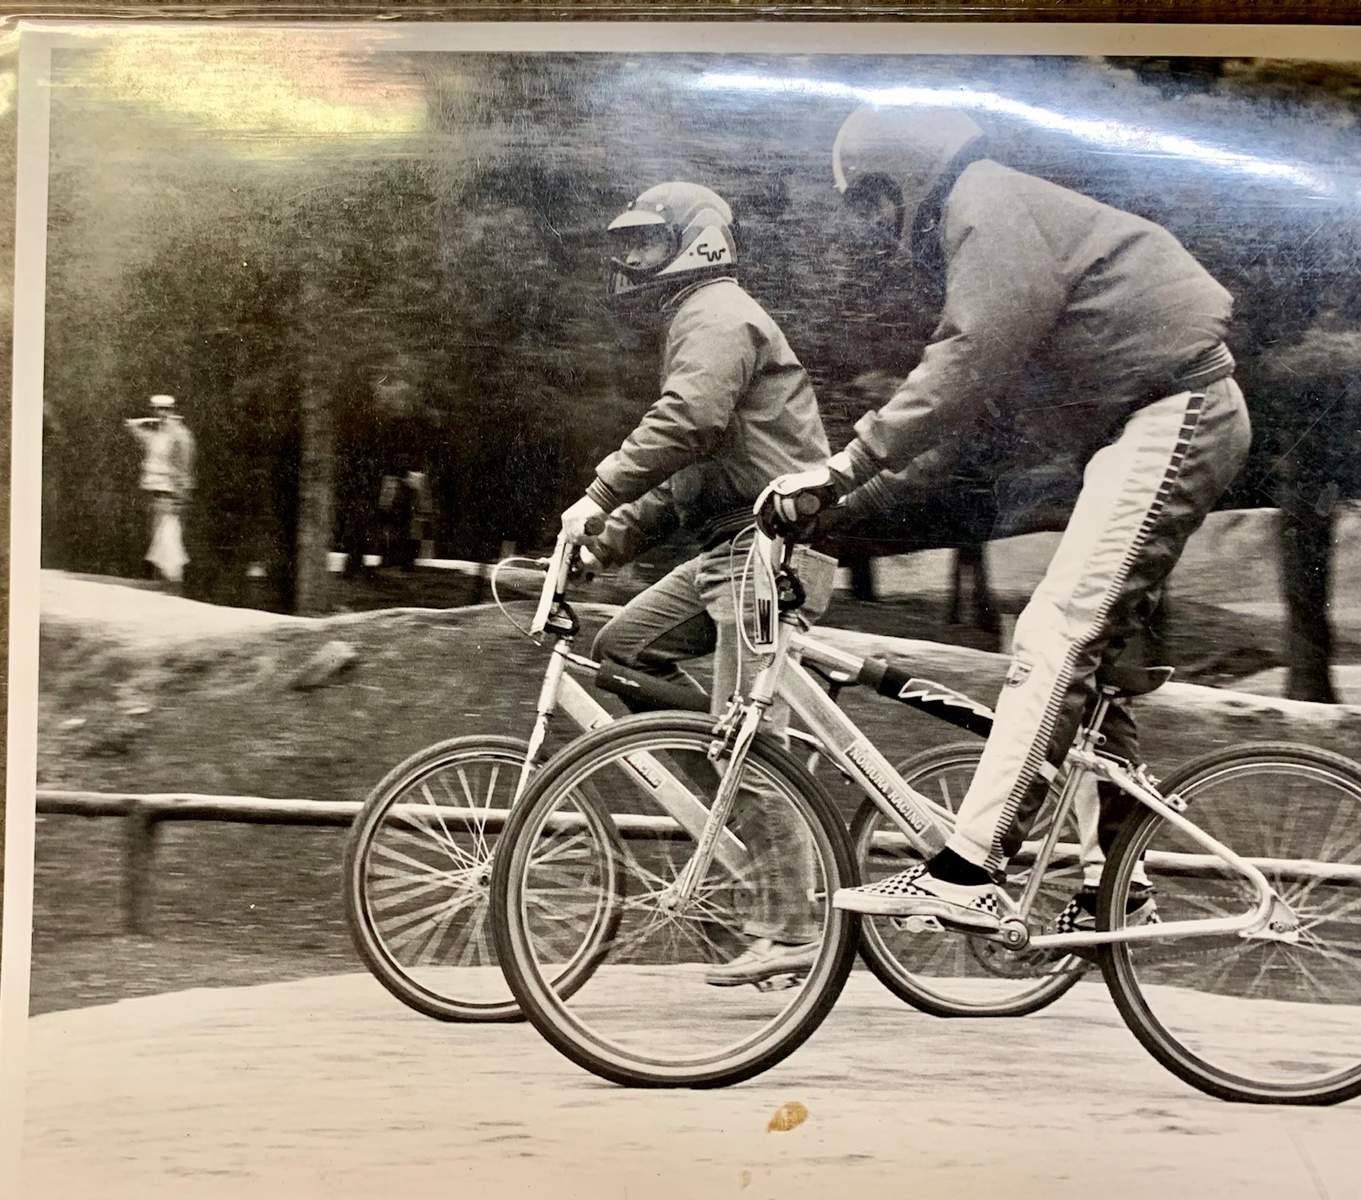 https://s3.amazonaws.com/uploads.bmxmuseum.com/user-images/200046/img_90065d516d4476.jpg